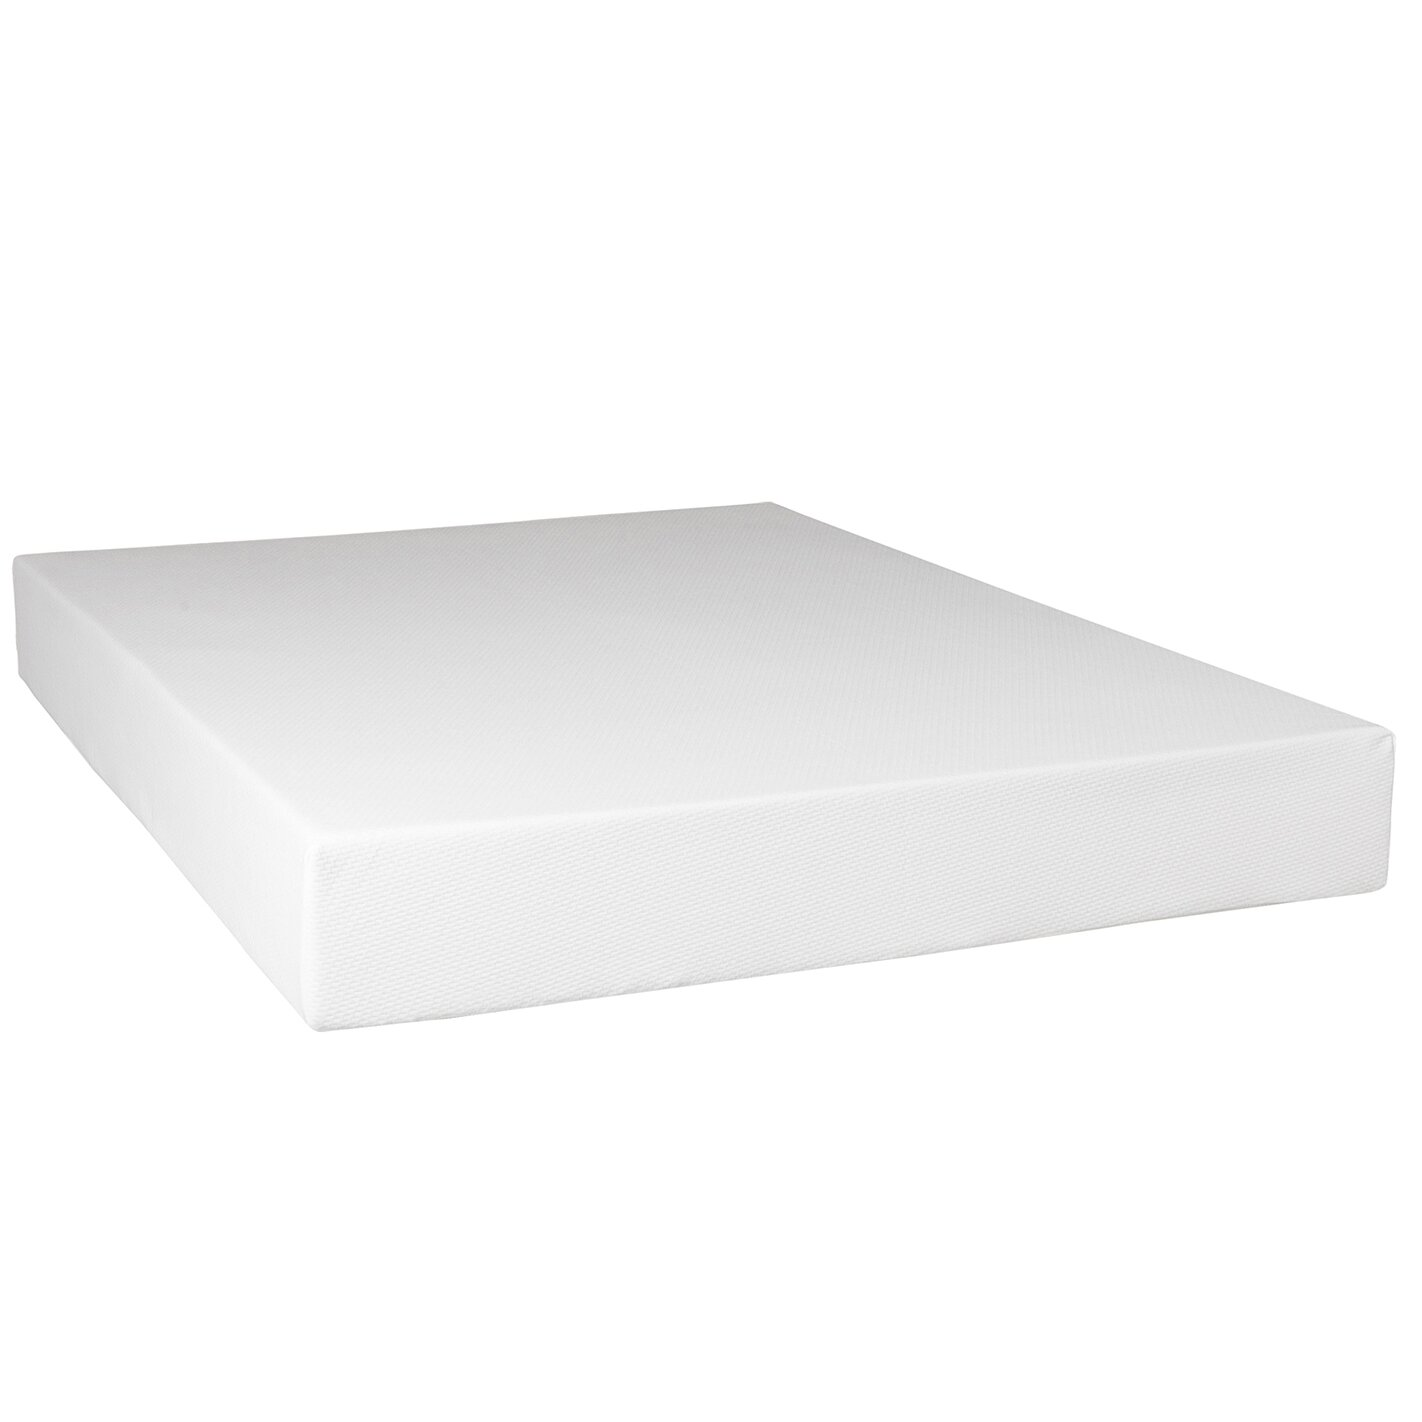 Serenia Sleep 10 Foam Mattress Reviews Wayfair